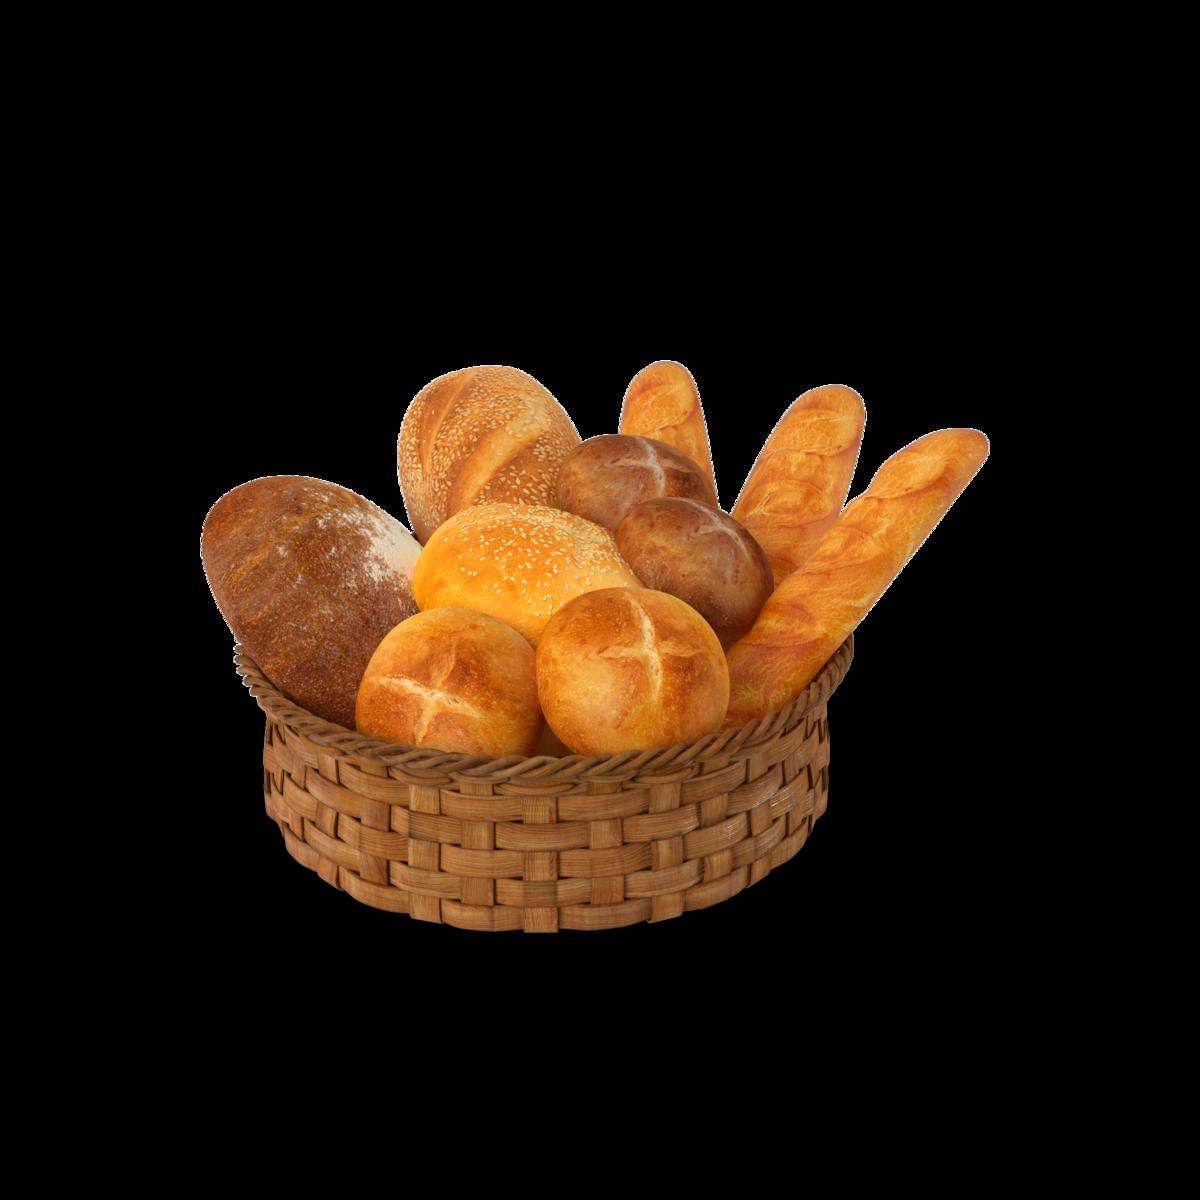 Bread_Basket.G01.2k.png